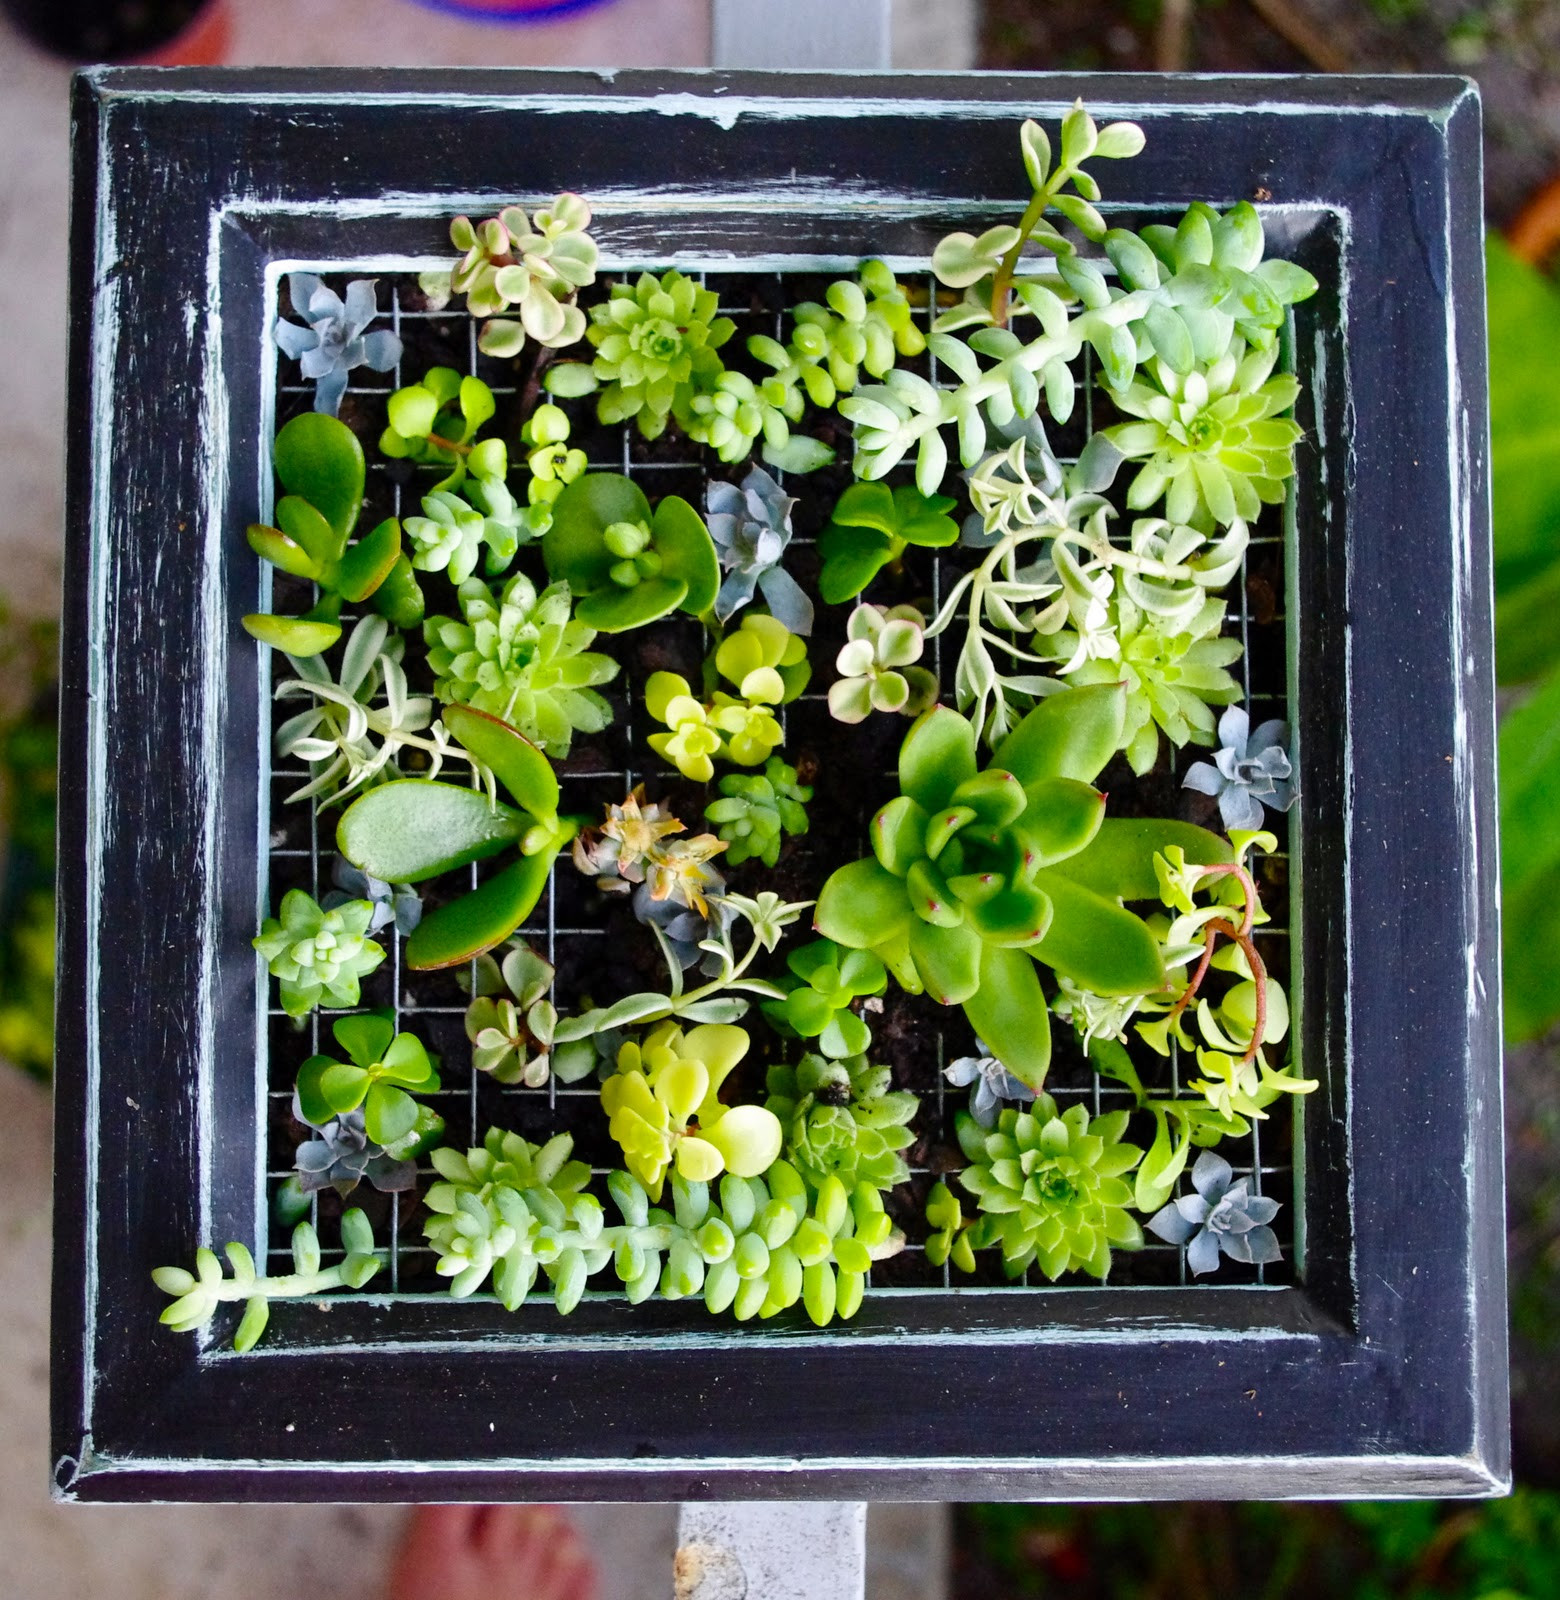 Best ideas about DIY Succulent Wall . Save or Pin turquoise violets DIY succulent wall garden Now.